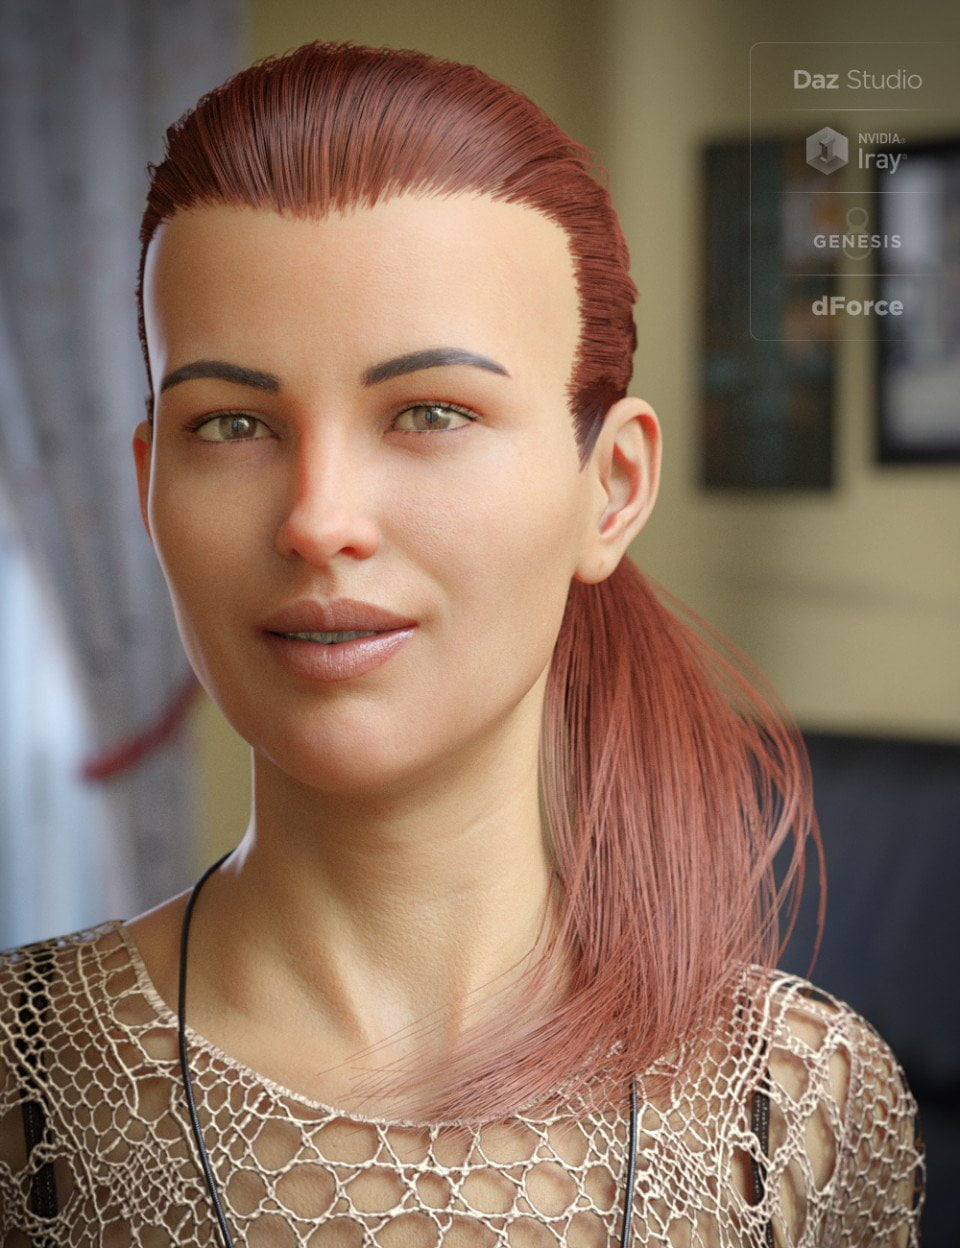 dForce Hair Elyssa Ponytail for Genesis 8 Female(s) ⋆ 3d